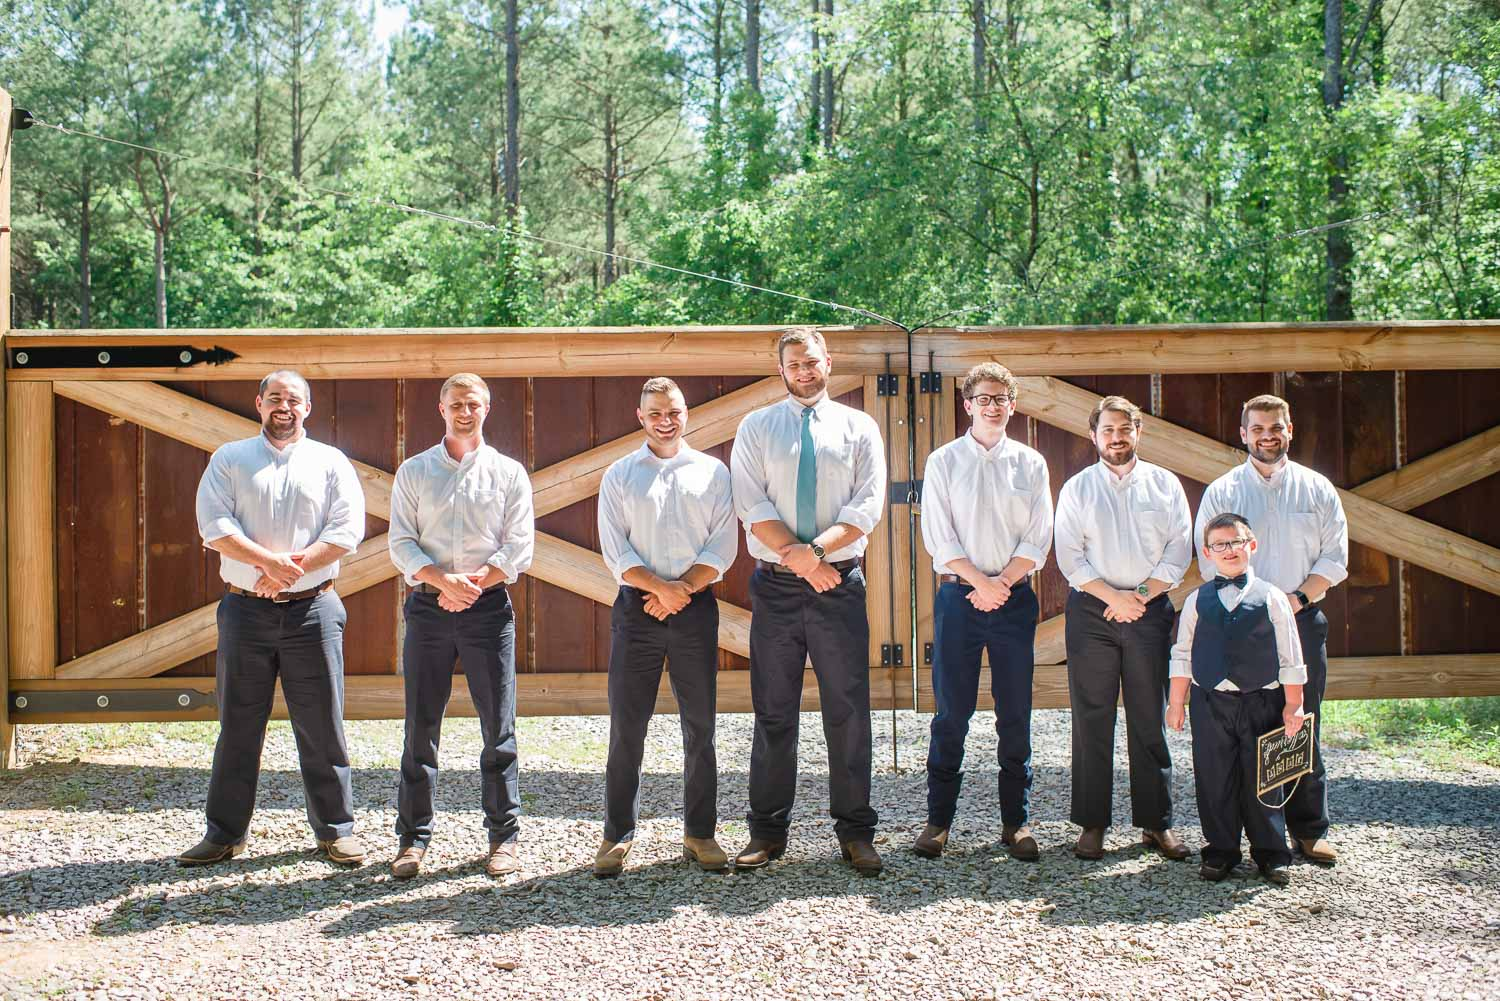 groomsmen in front of sawmill shed gate at Hiwassee River Weddings